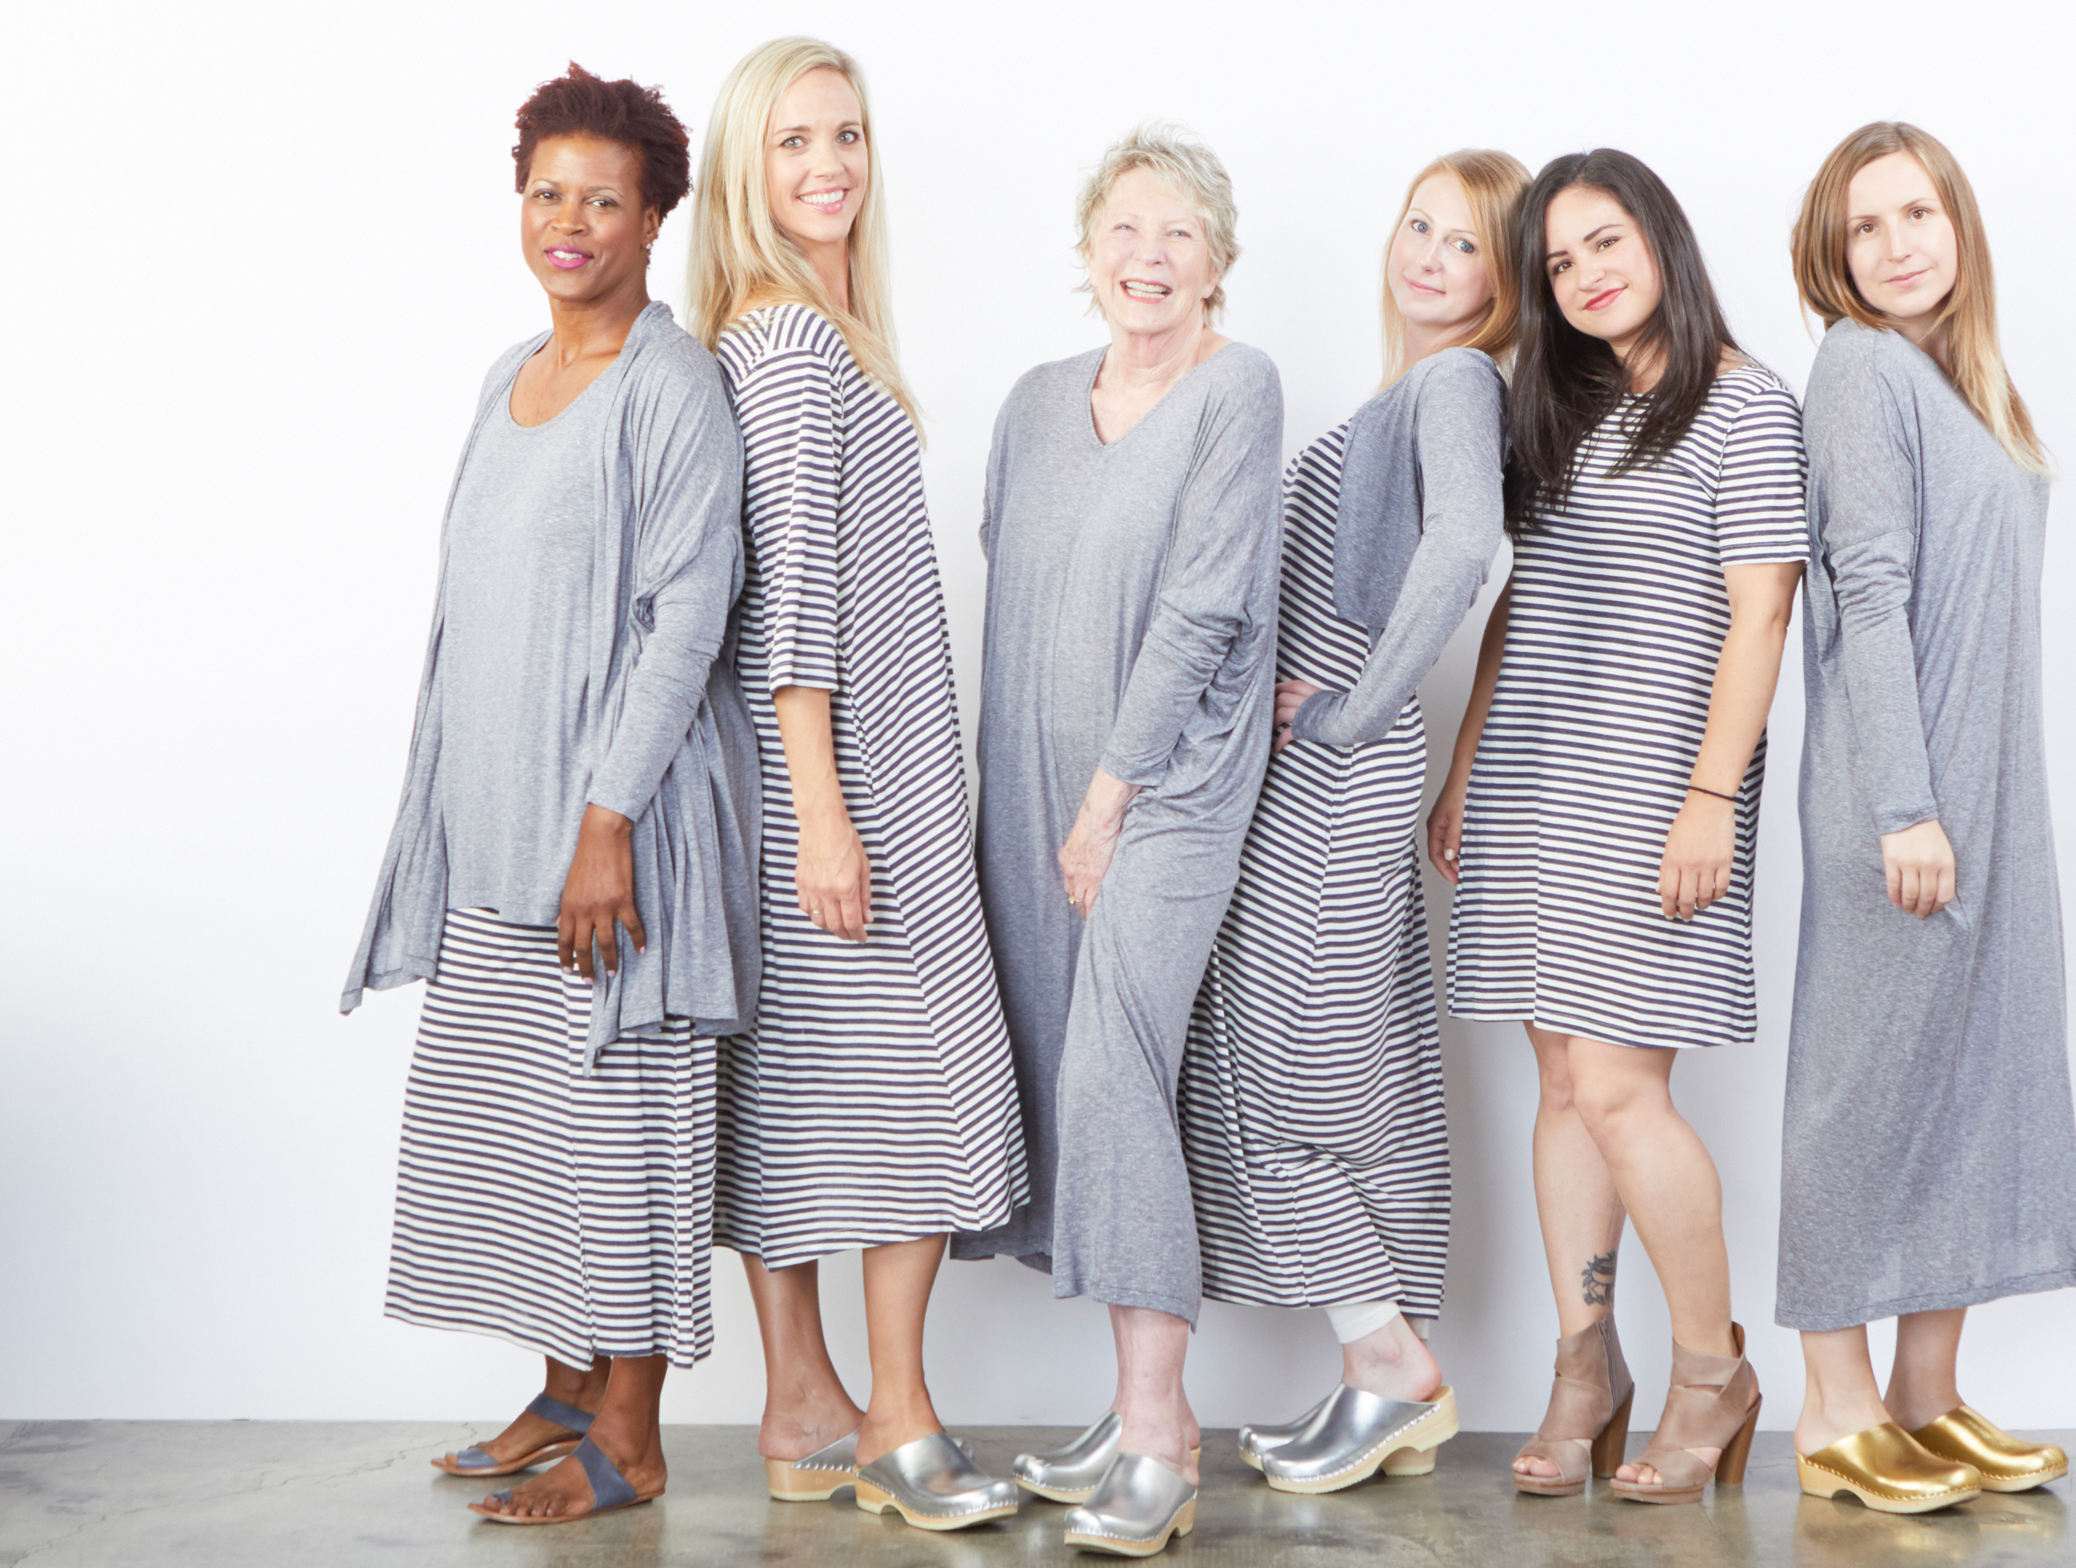 Stoker Cardigan, Tre Cardigan, Lois Tank, Renata Dress in Mini Stripe, Homer Dress, Pippa Dress, Bea Tunic in Silk Viscose Stripe